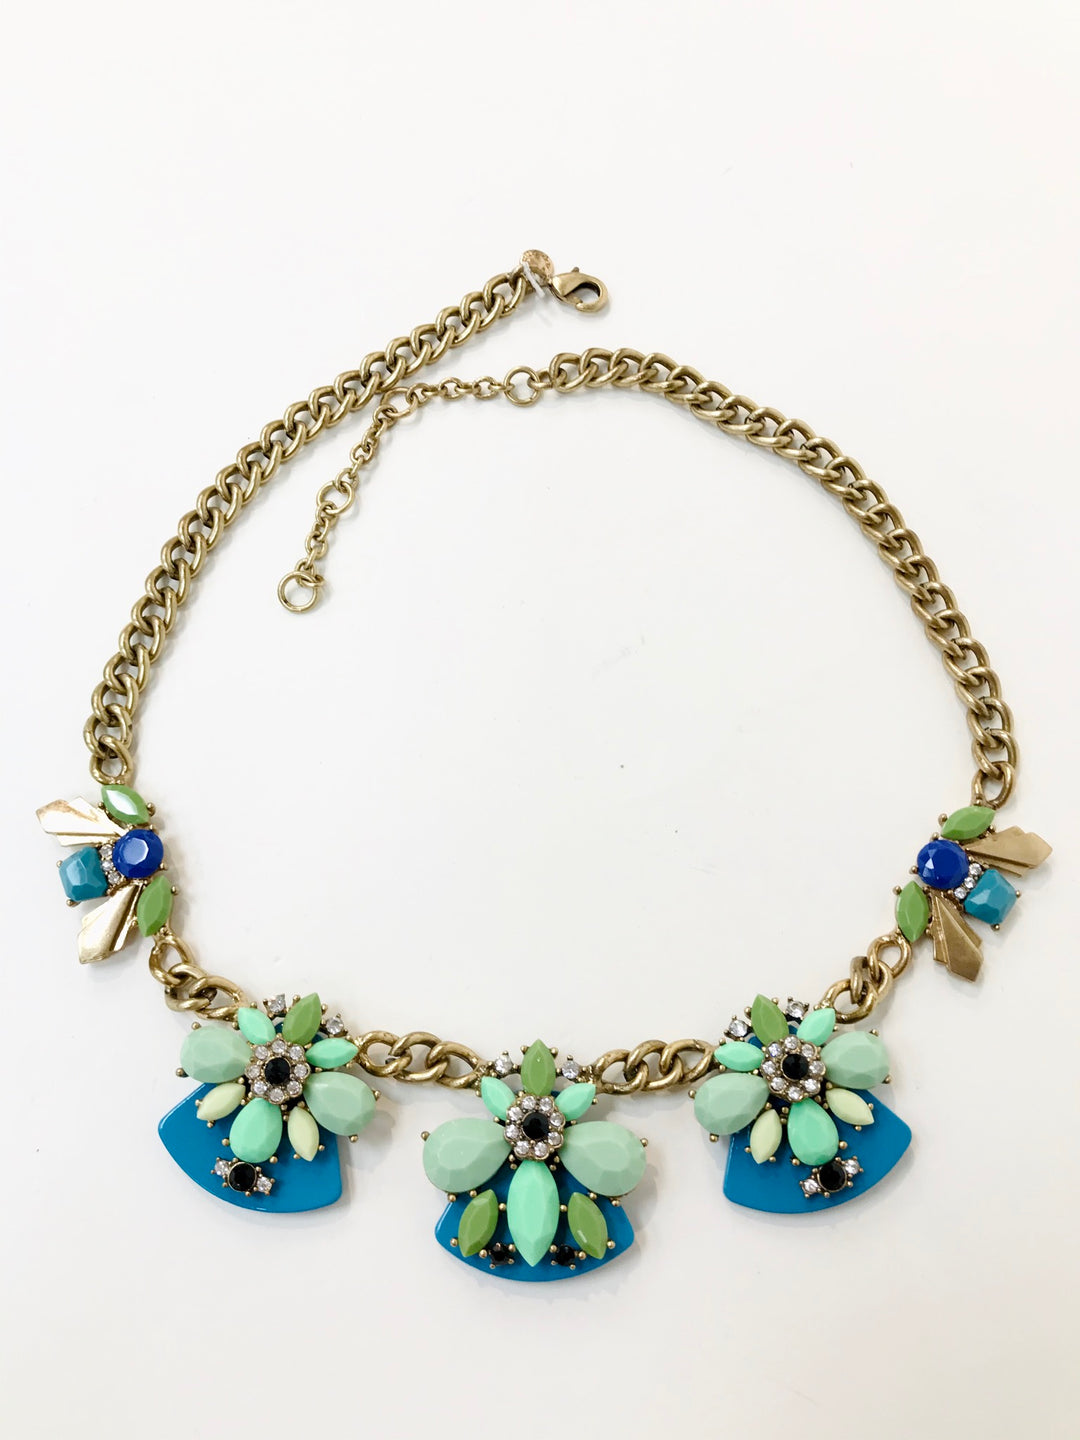 Primary Photo - BRAND: J CREW O <BR>STYLE: NECKLACE <BR>COLOR: MULTI <BR>SKU: 262-26211-136839<BR>AS IS